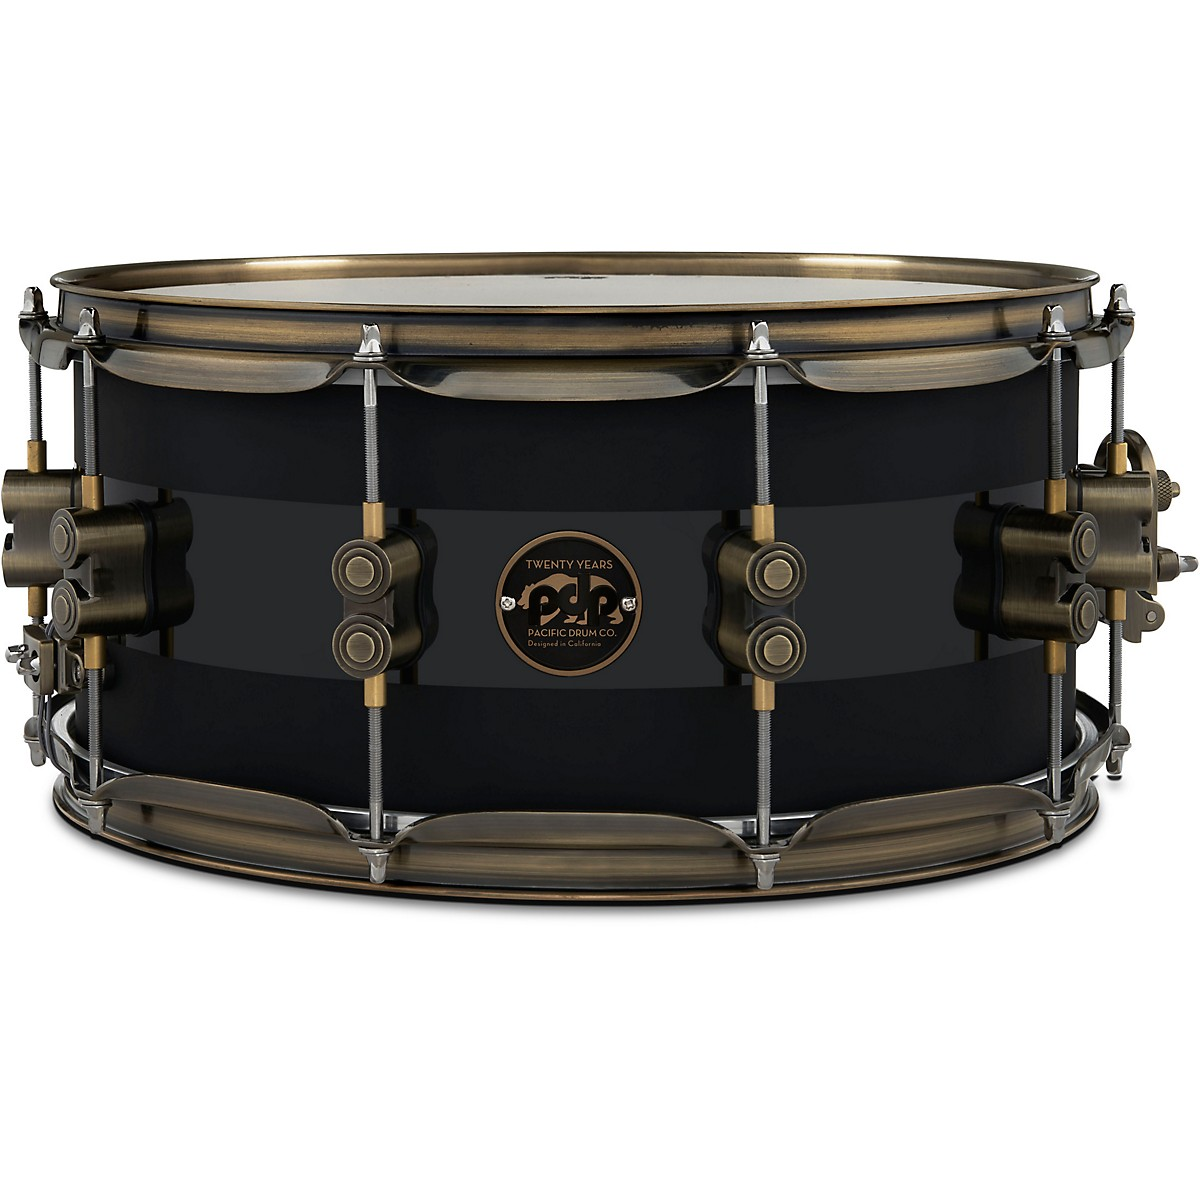 PDP by DW 20th Anniversary Snare Drum, Matte/Gloss Black, Antique Bronze Hardware